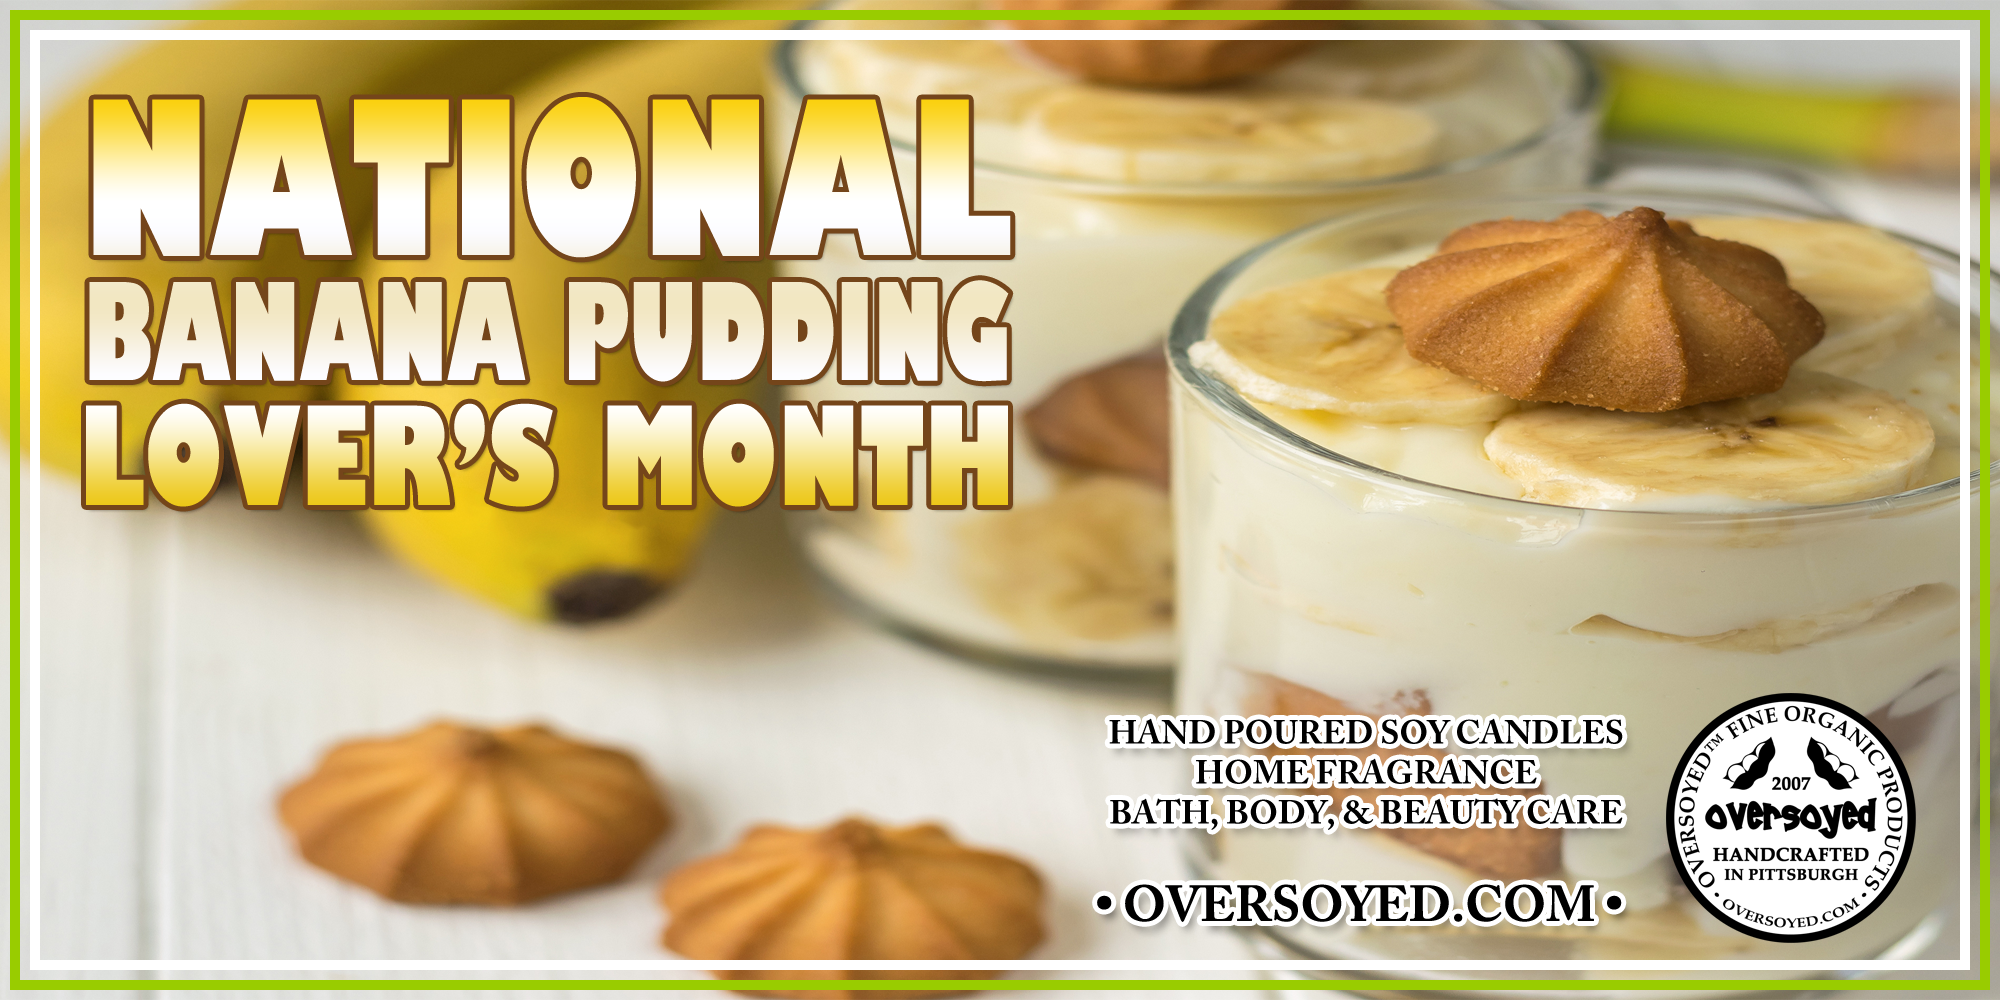 OverSoyed Fine Organic Products - Banana Pudding Lover's Month